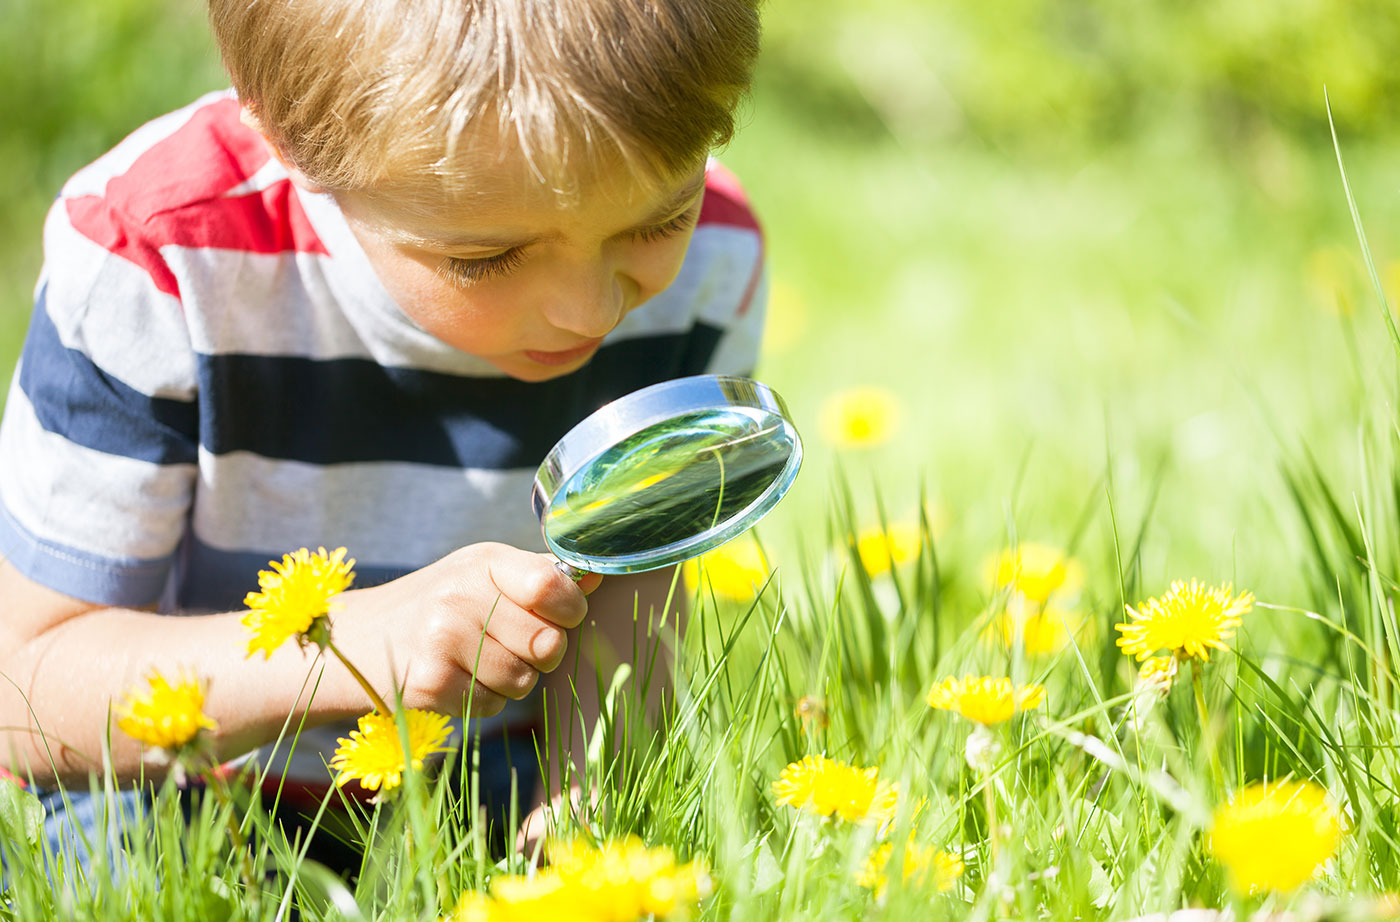 child with magnifying glass and dandelions